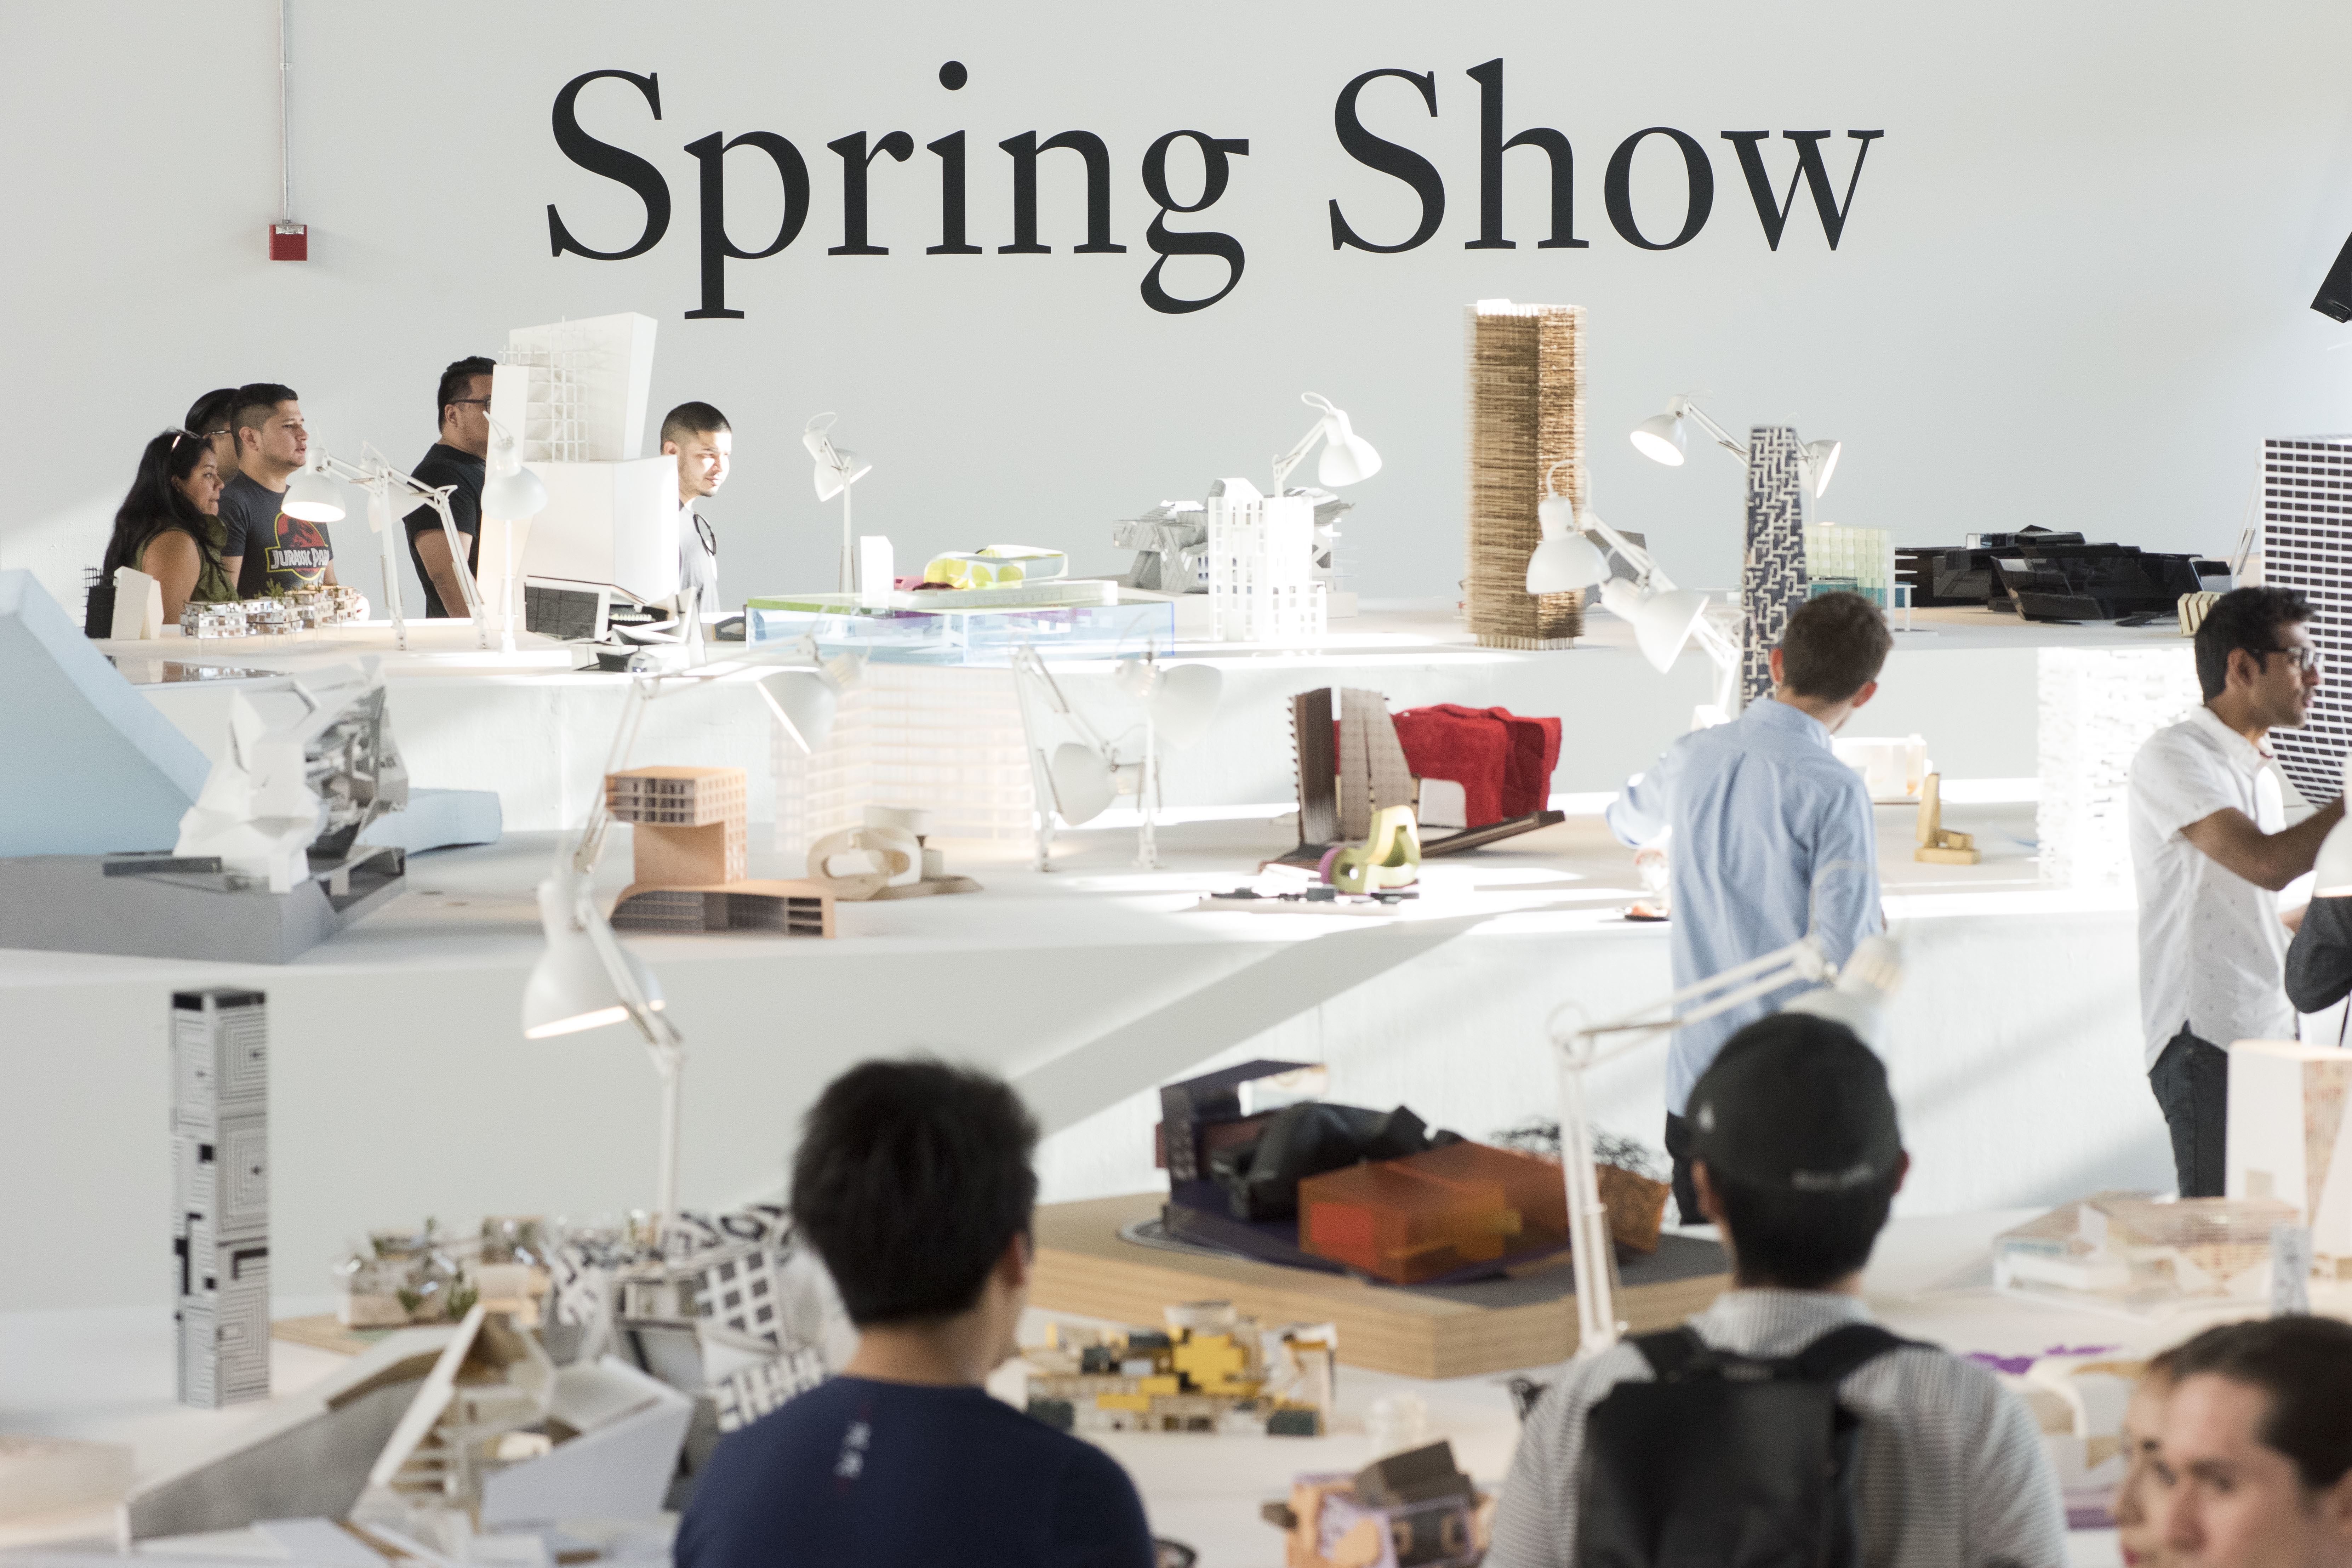 Spring Show exhibition crowds